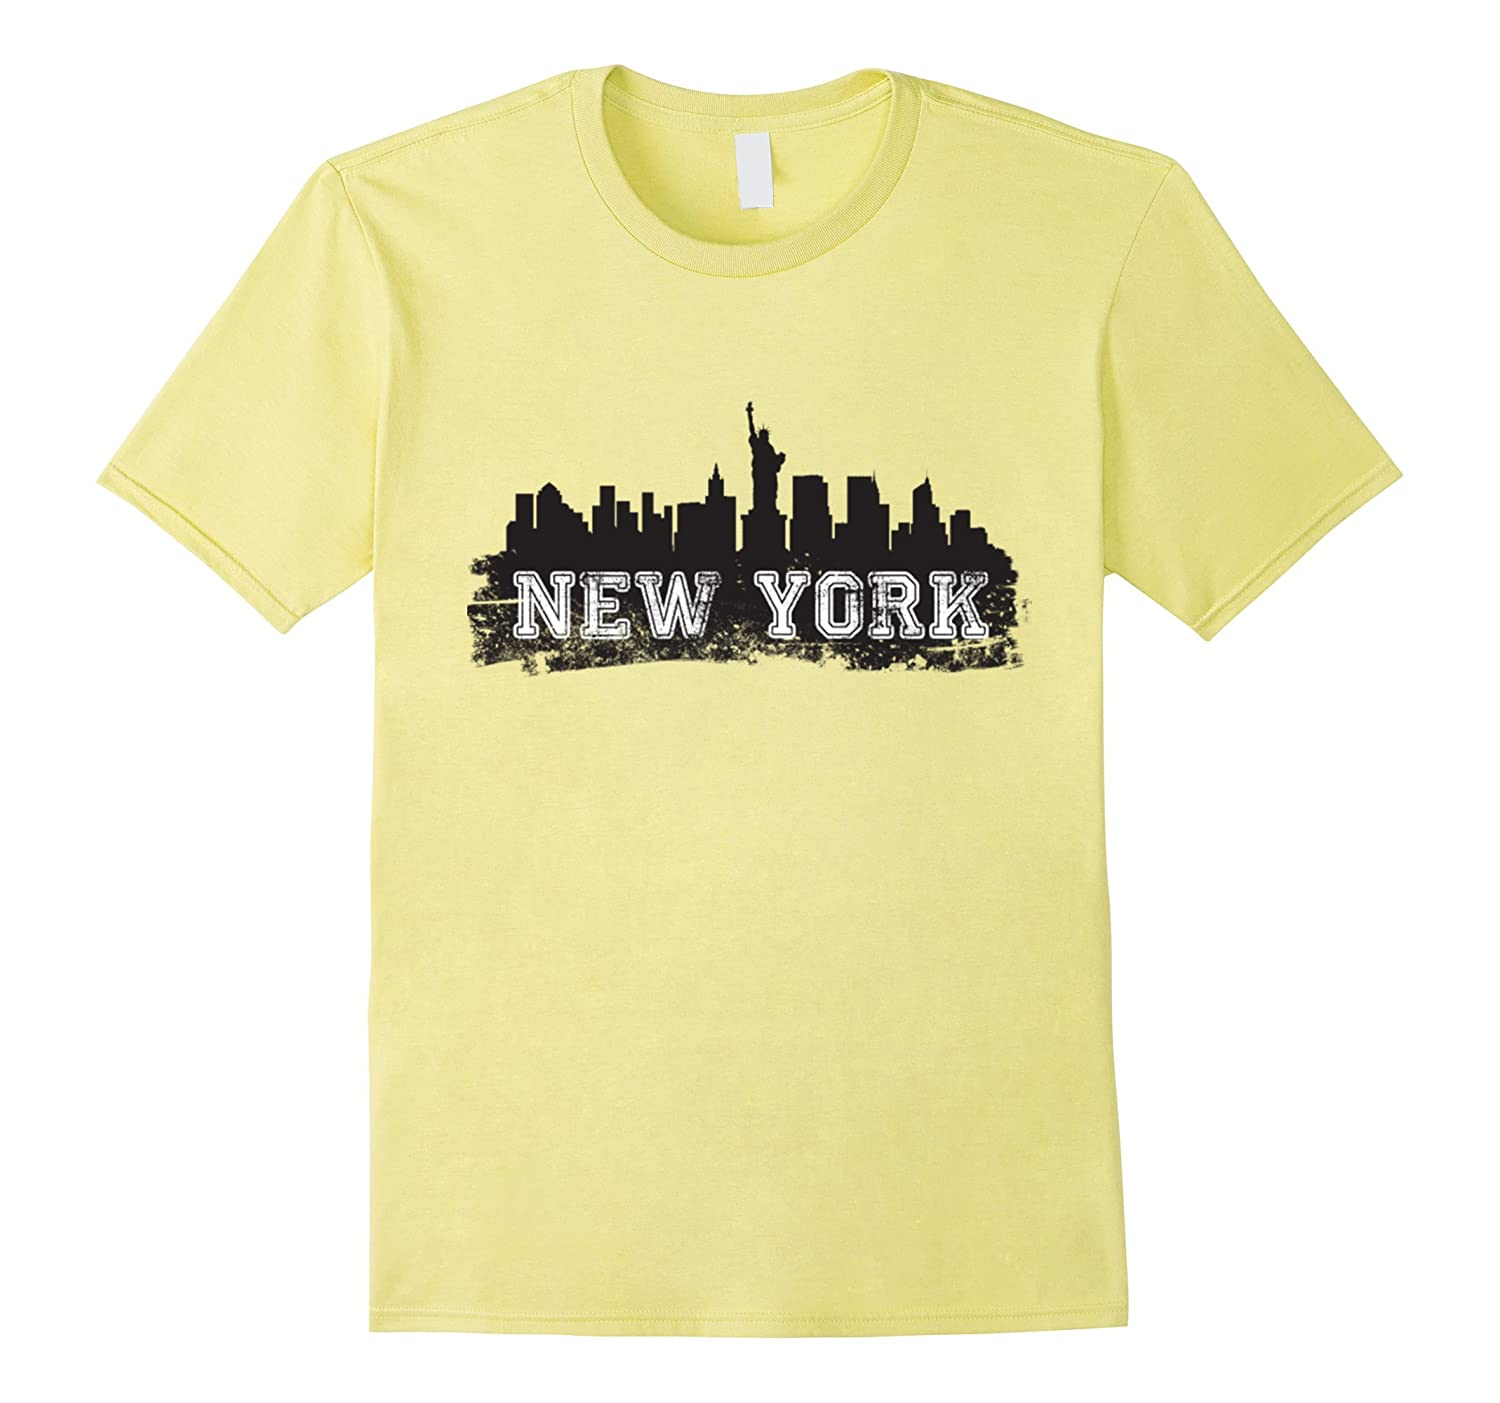 New York City T Shirt New York State Shirt Vintage New